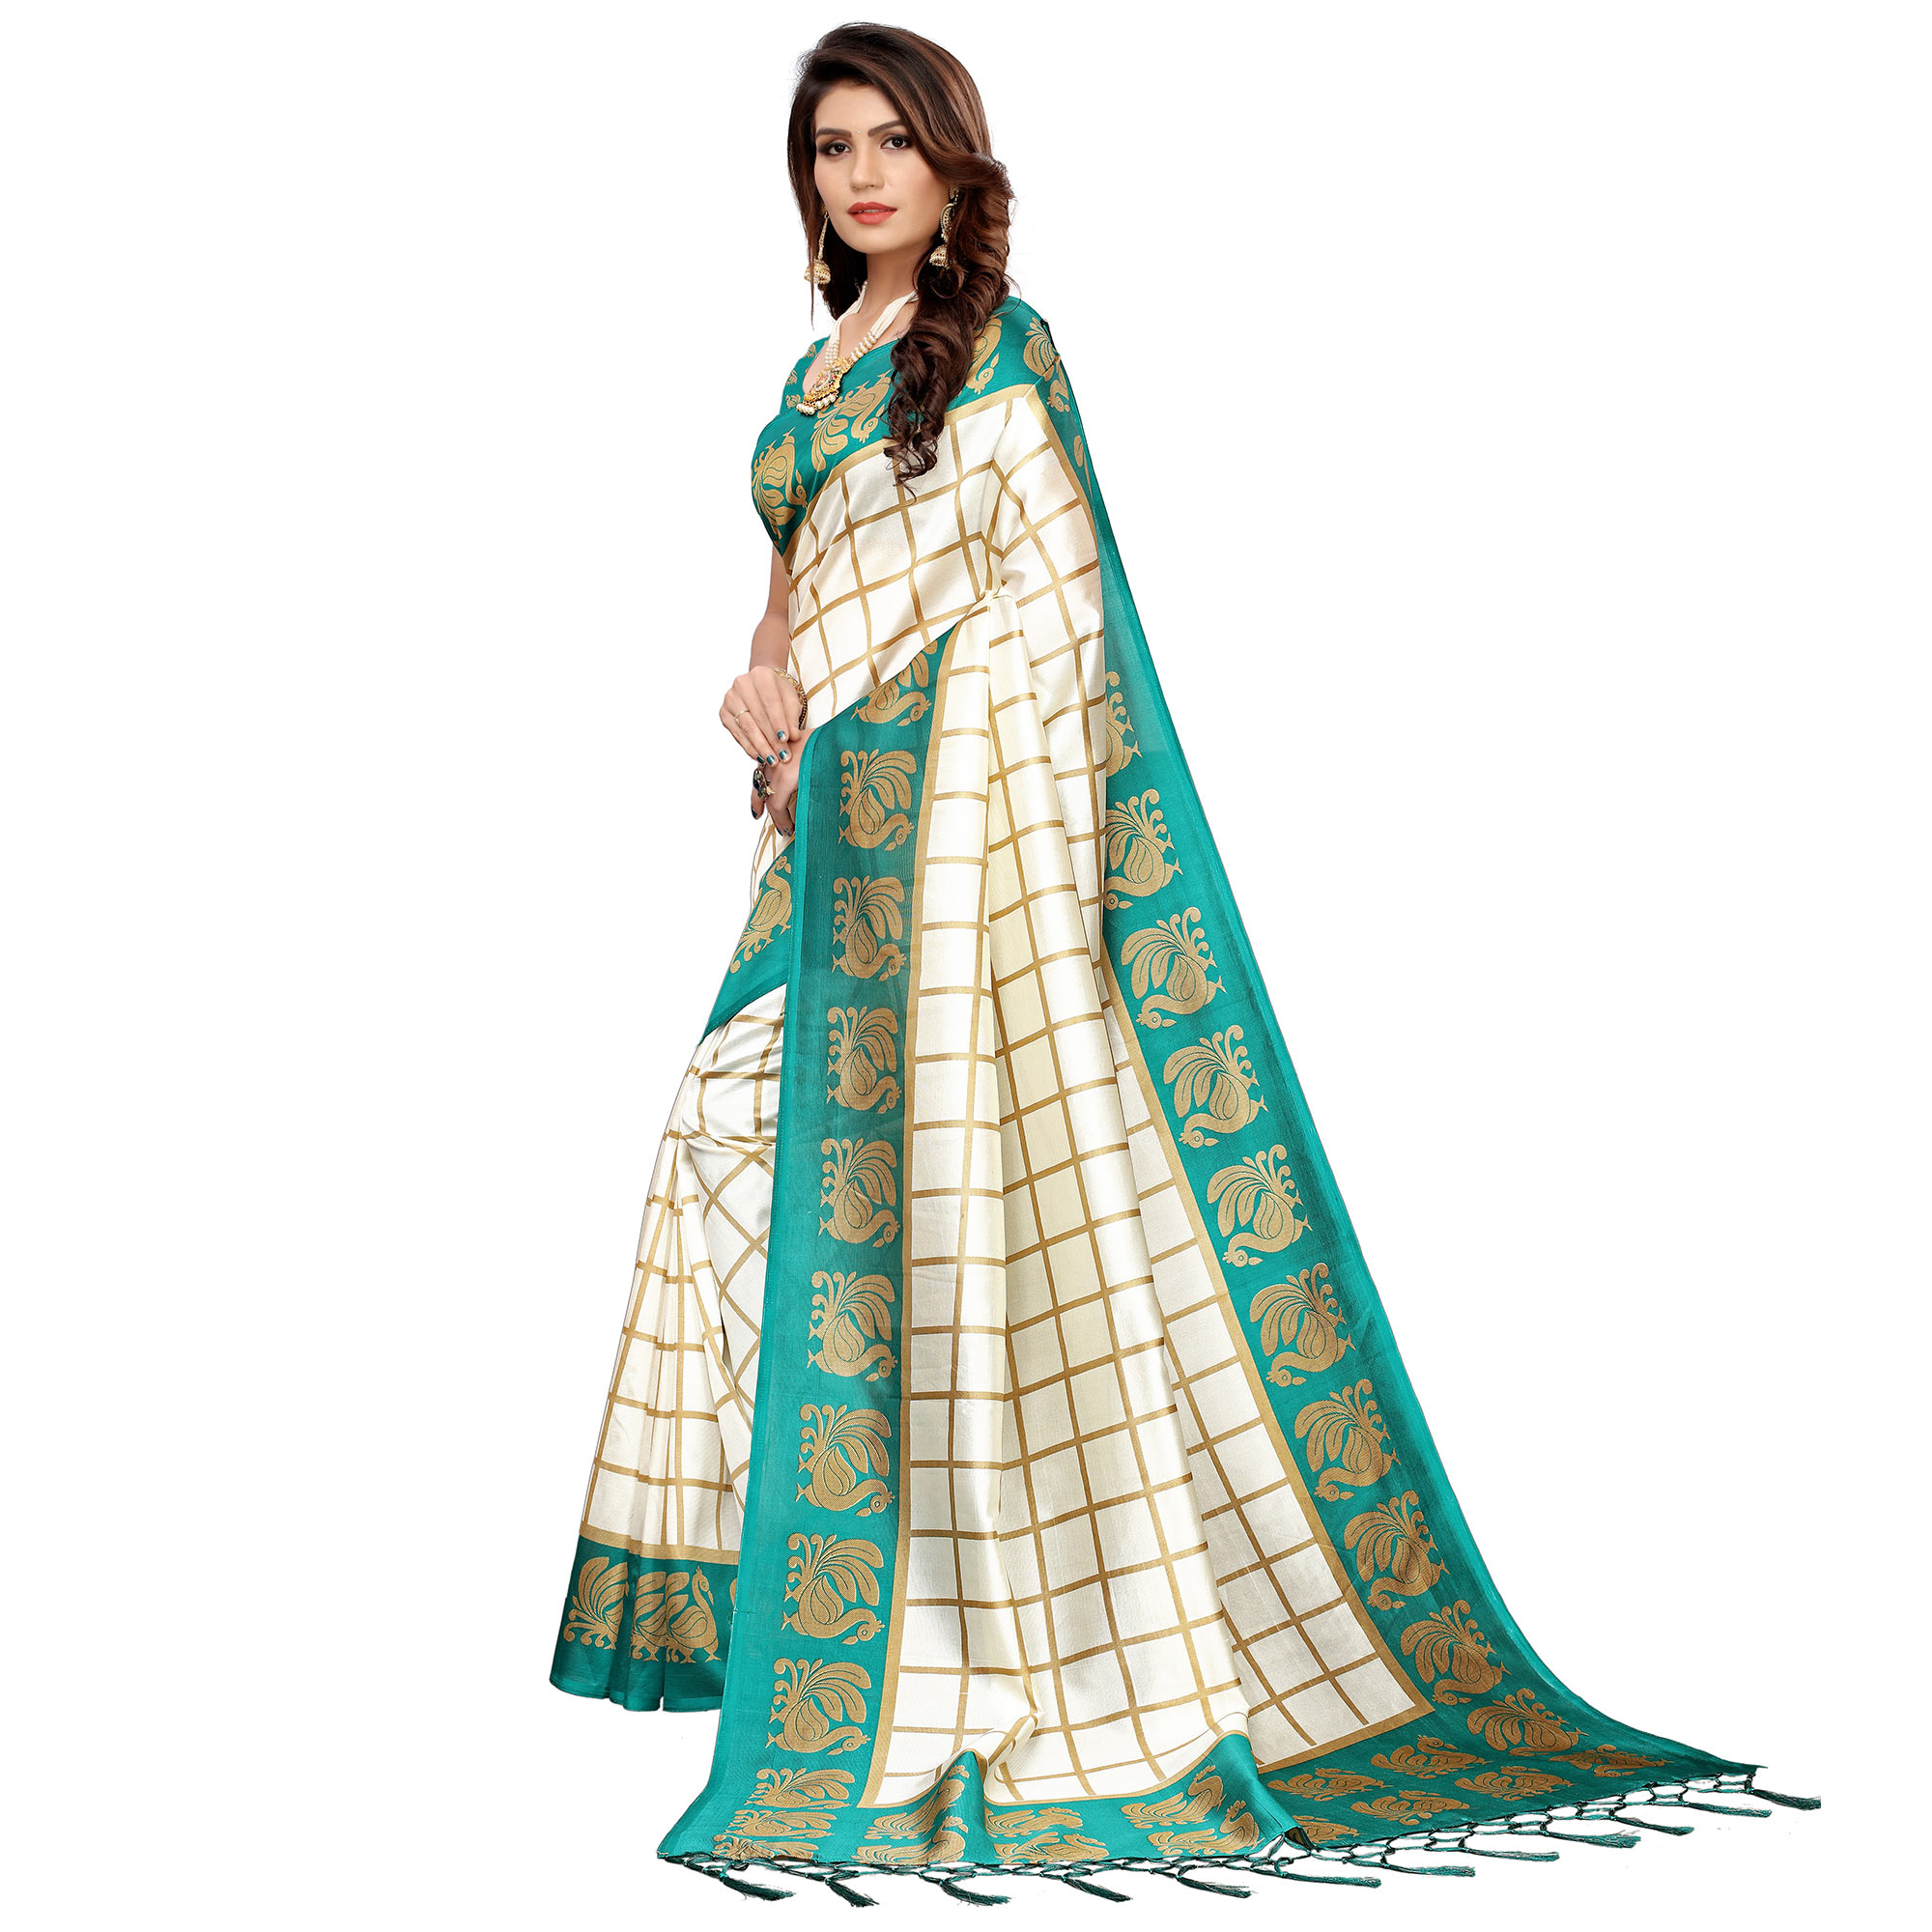 Classy Off White-Turquoise Green Colored Festive Wear Art Silk Saree